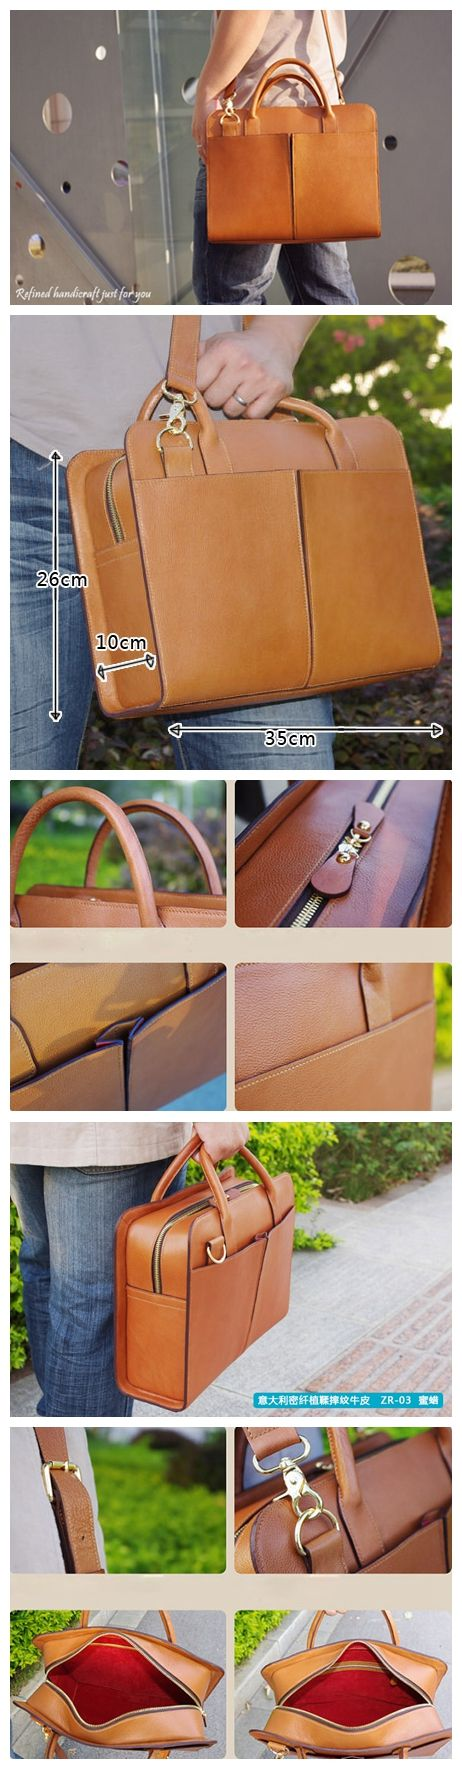 Custom Handmade Tan Brown Leather Briefcase, Messenger Shoulder Bag Men's Handbag